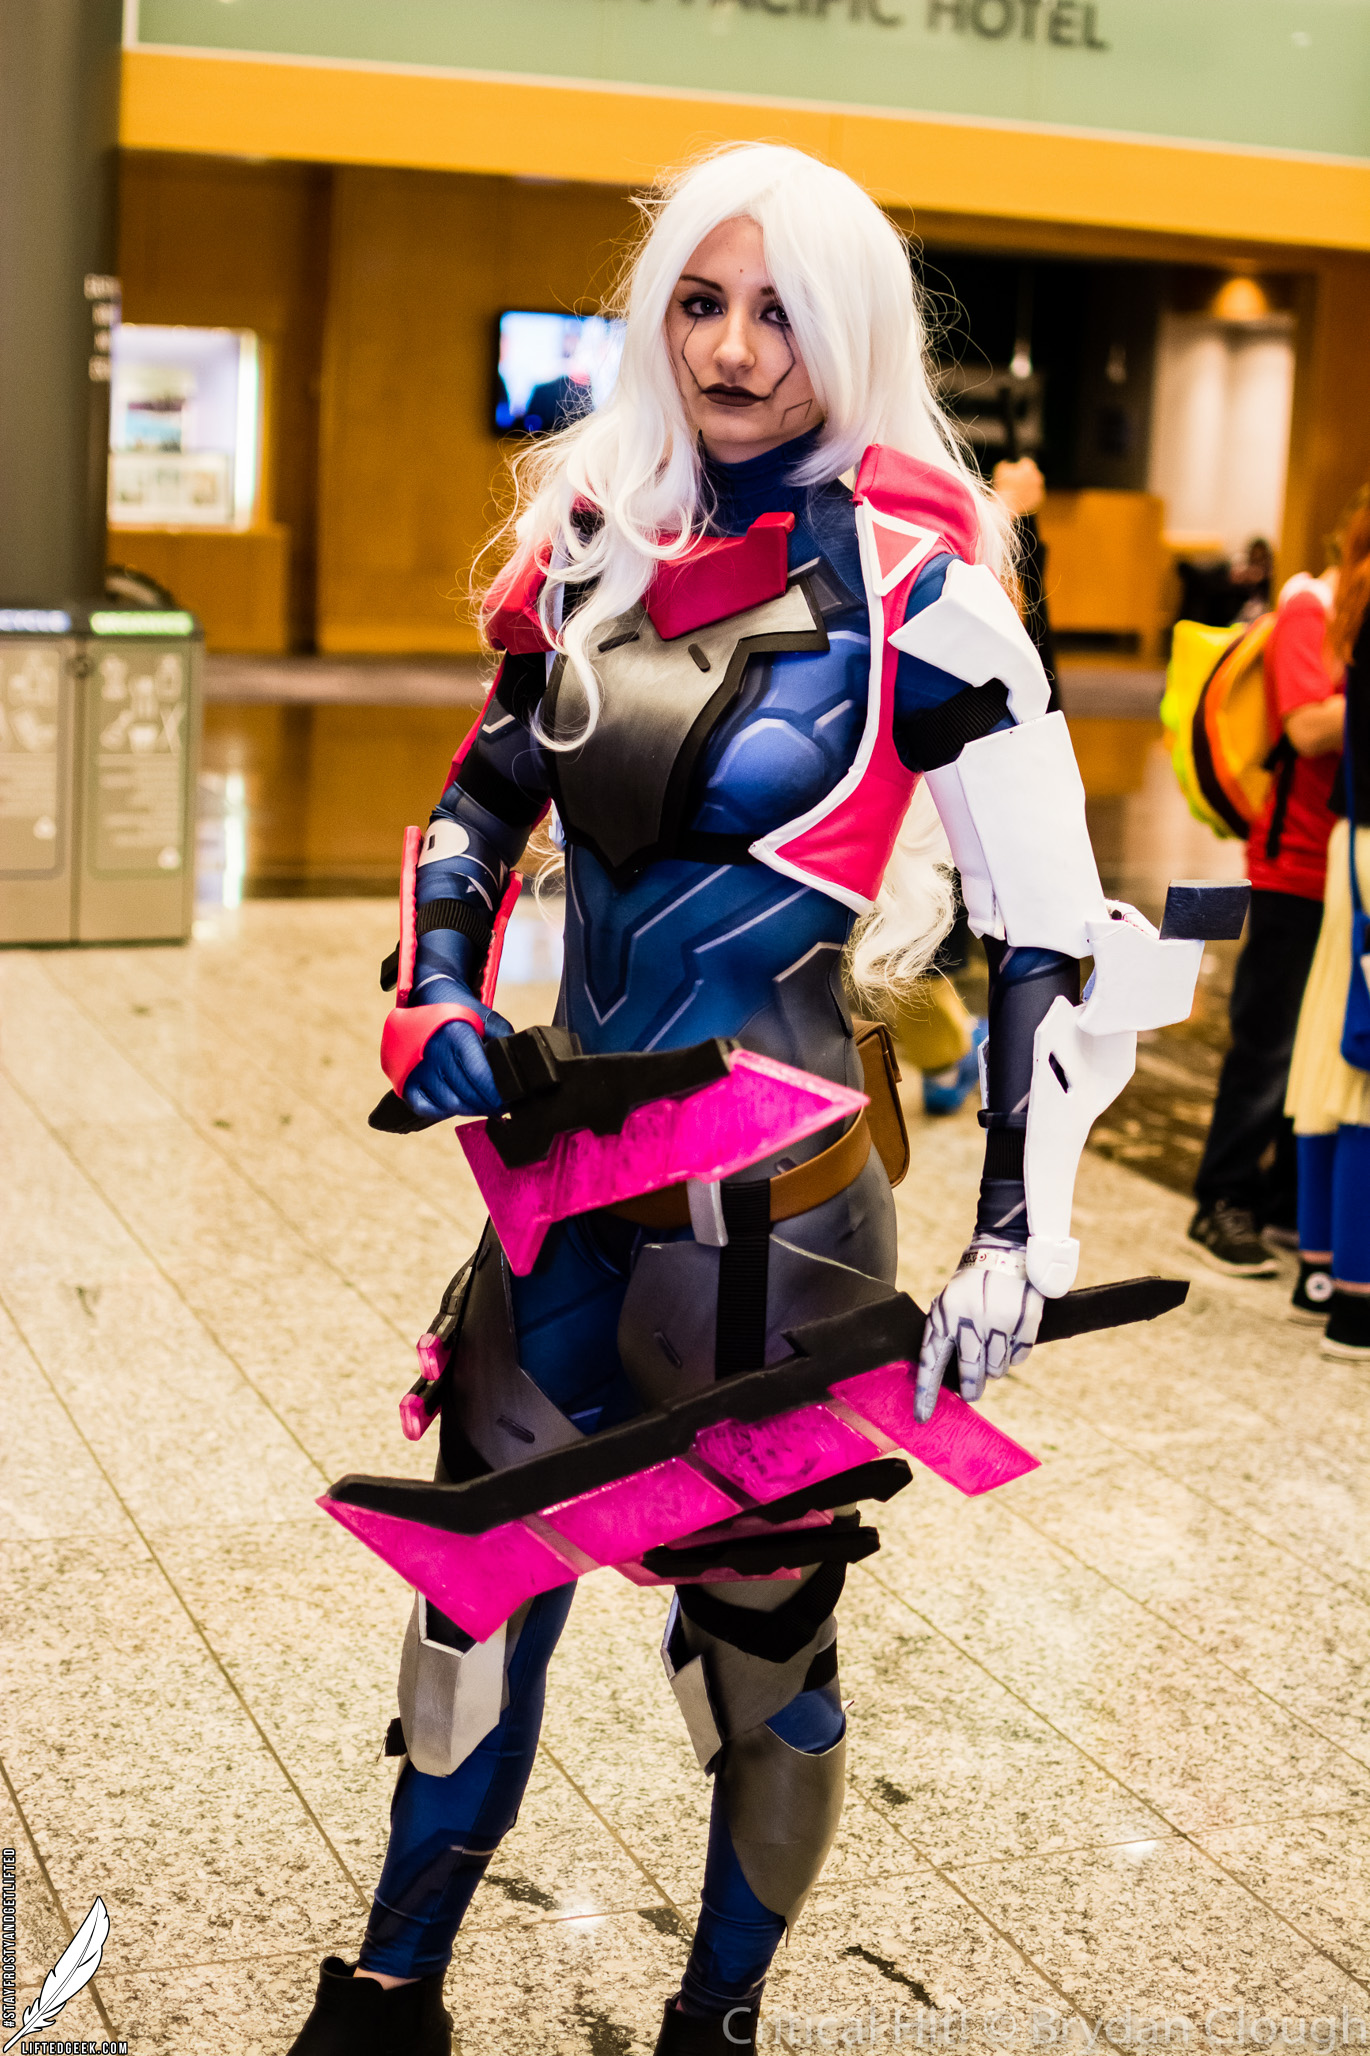 halloween expo cosplay contest 2016-112.jpg